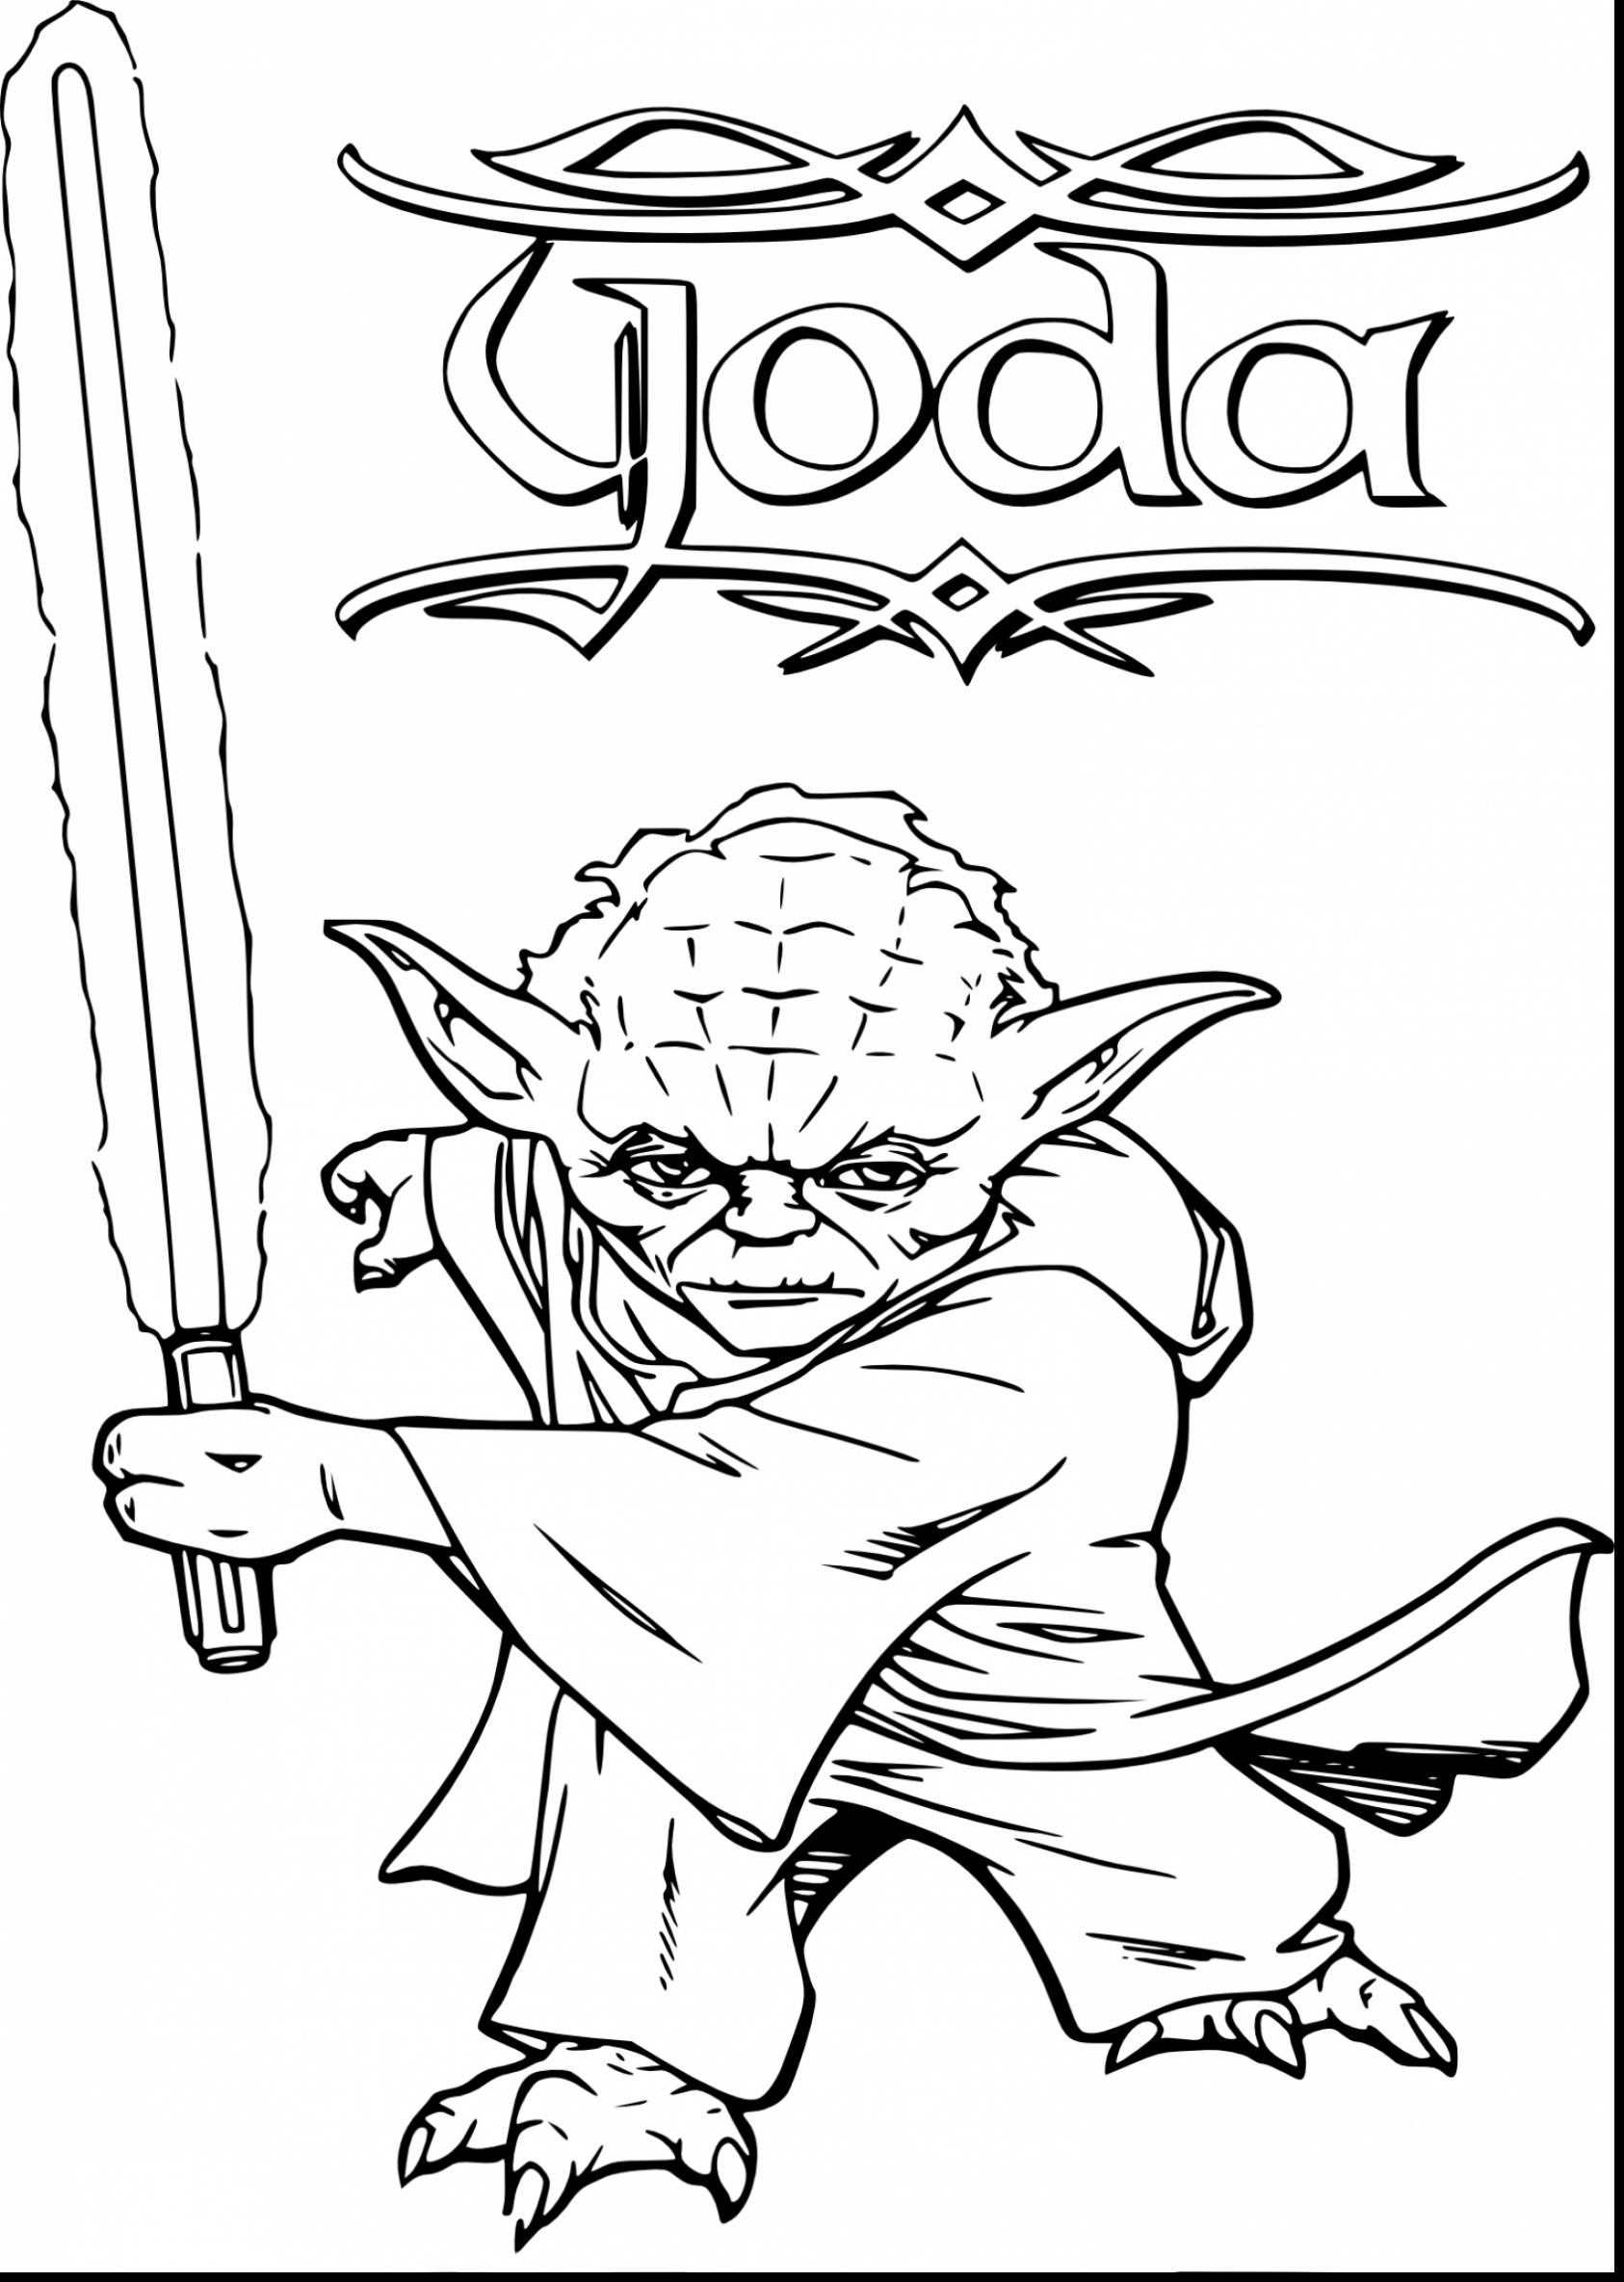 Star Wars Free Coloring Pages to